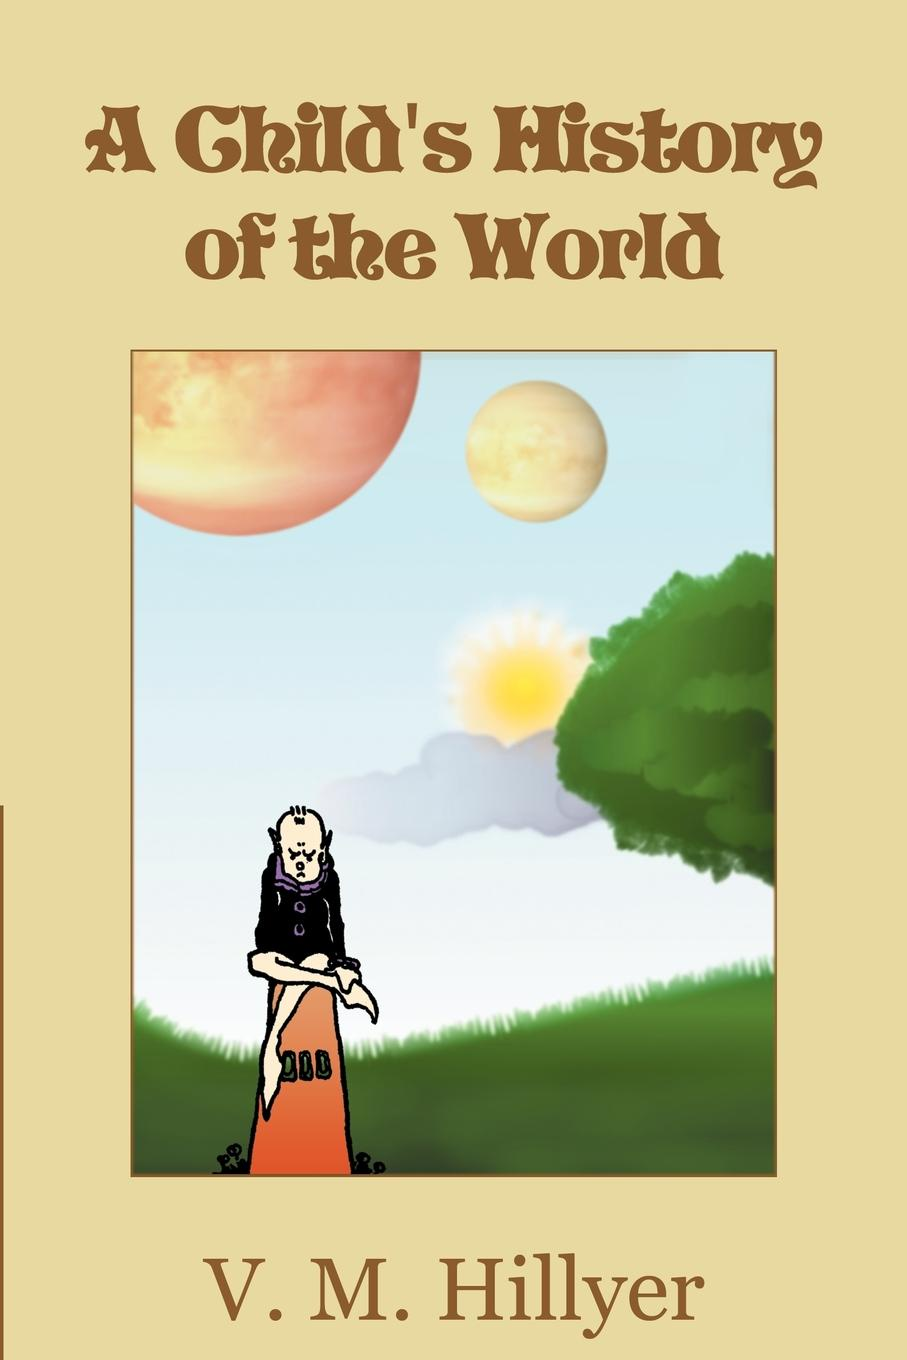 V. M. Hillyer A Child.s History of the World rosalind miles the women's history of the world